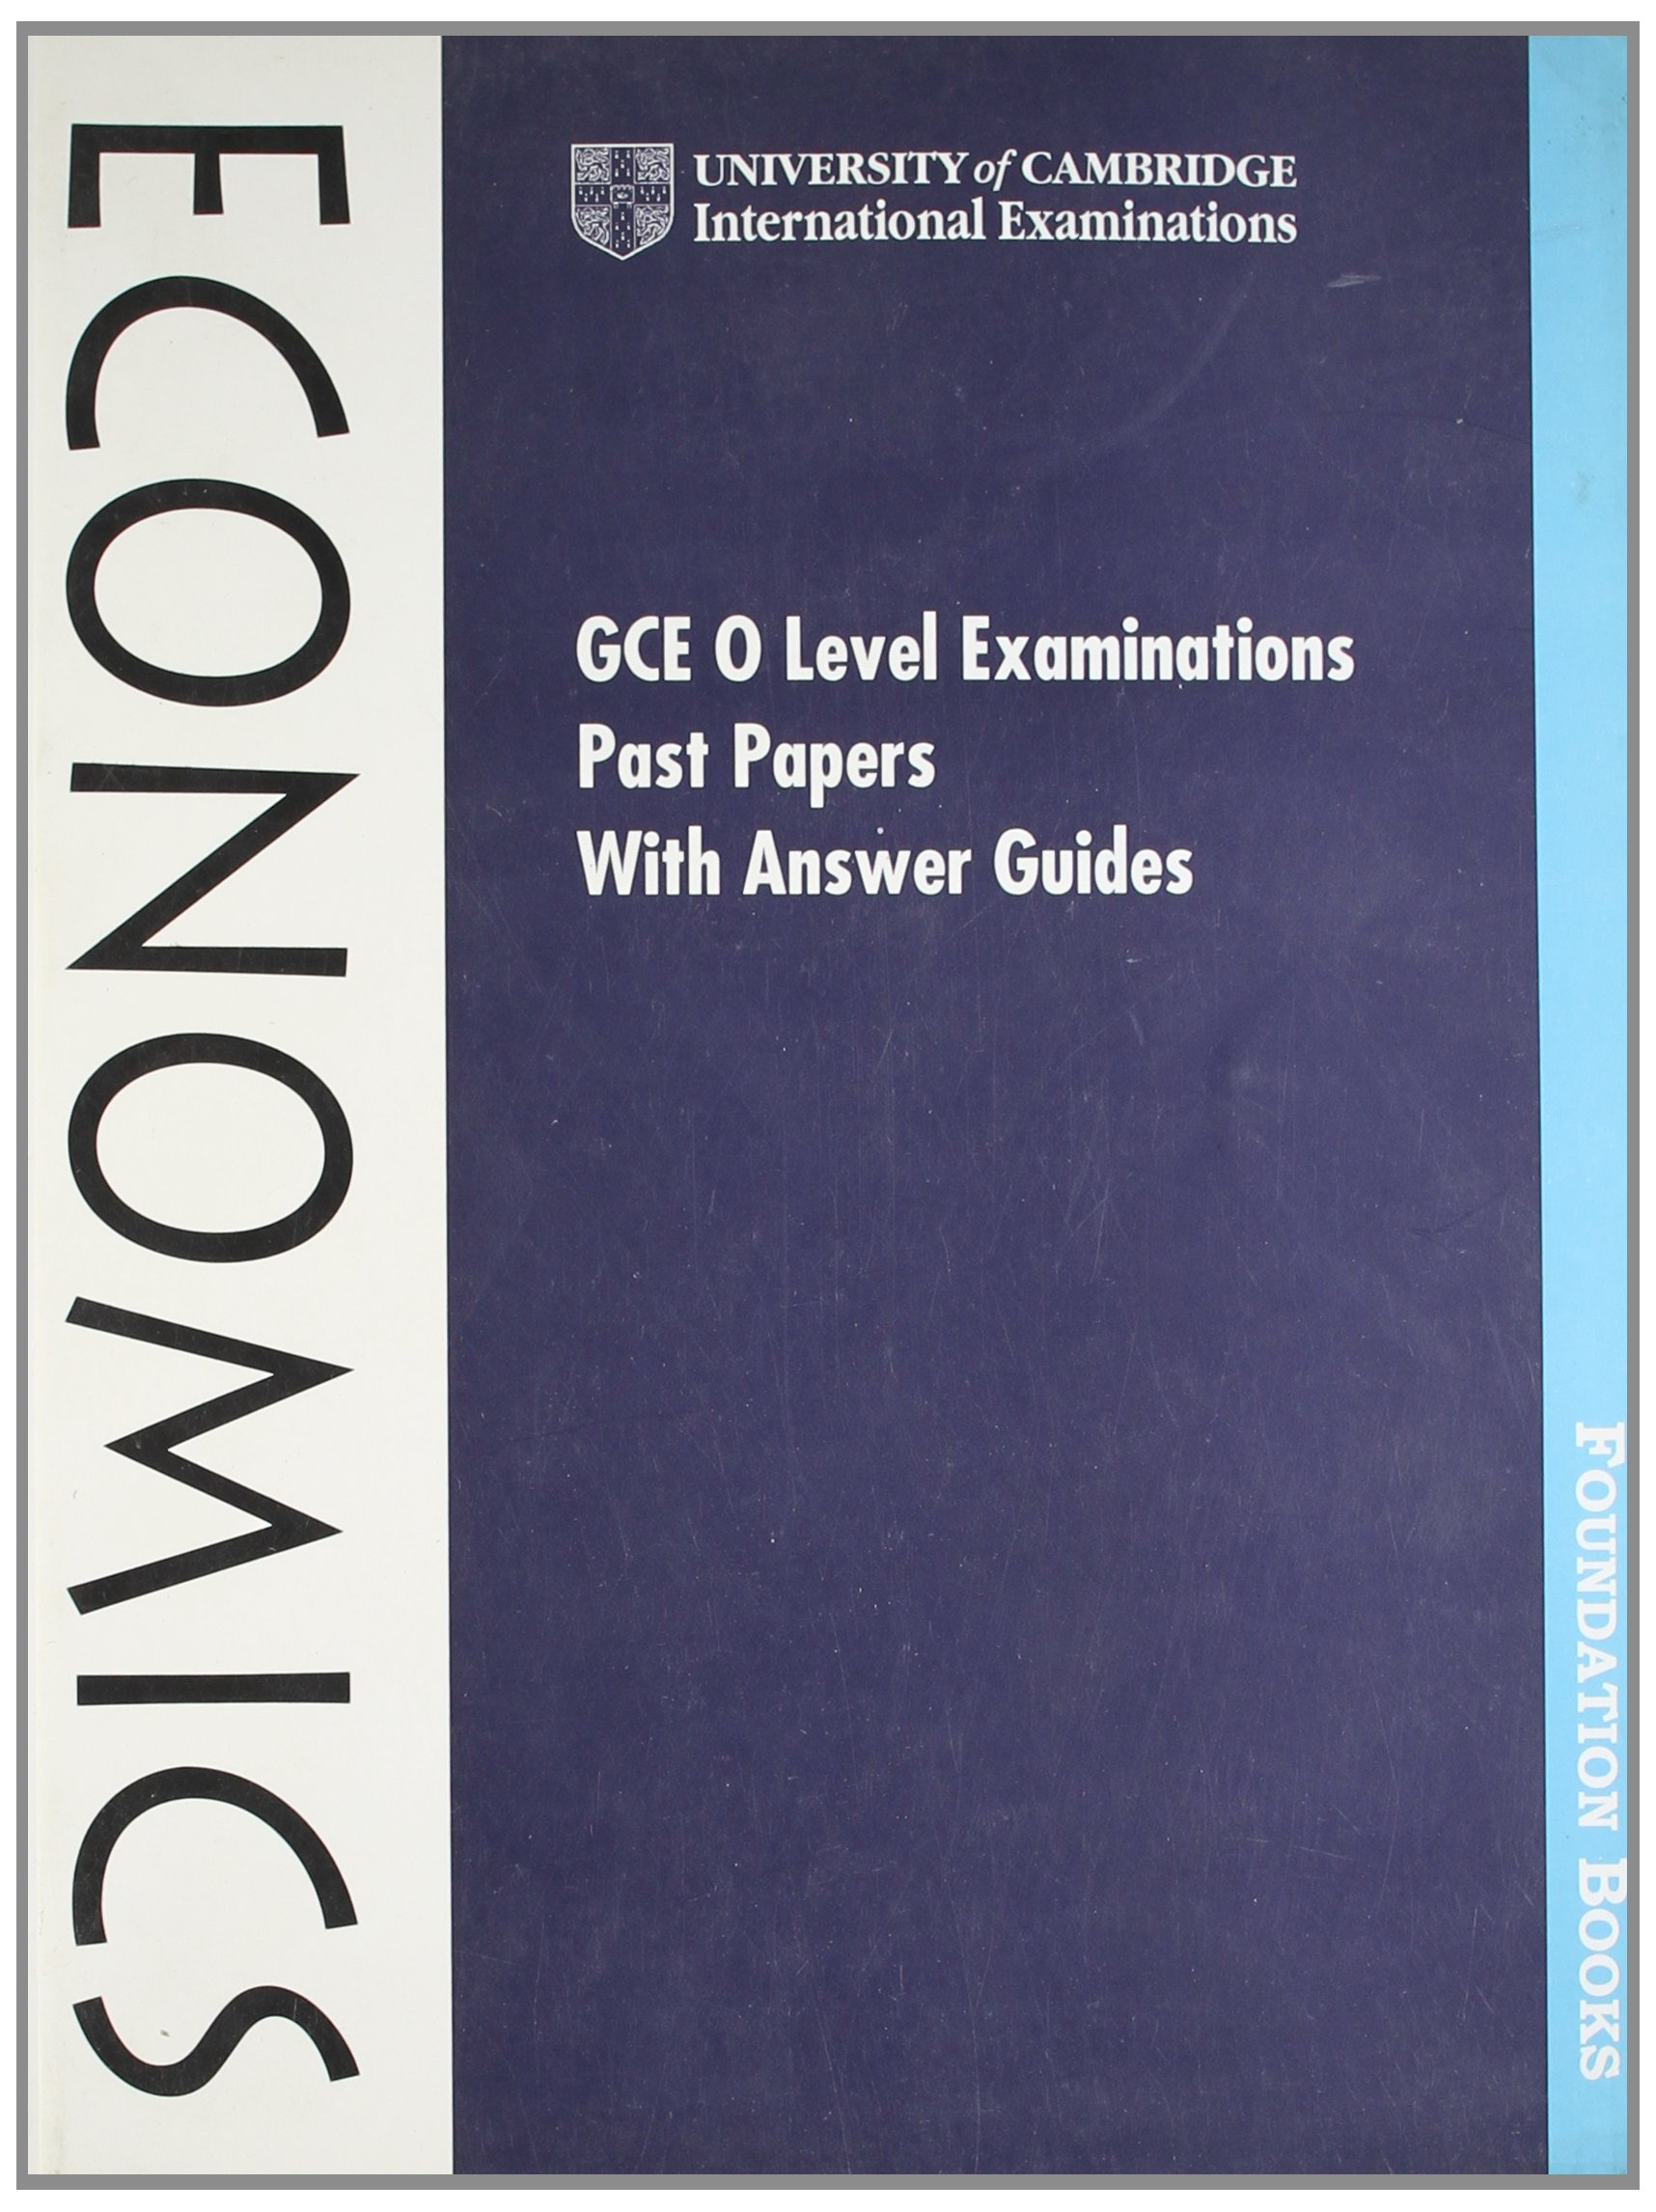 GCE O Level Examination Past Papers with Answer Guides